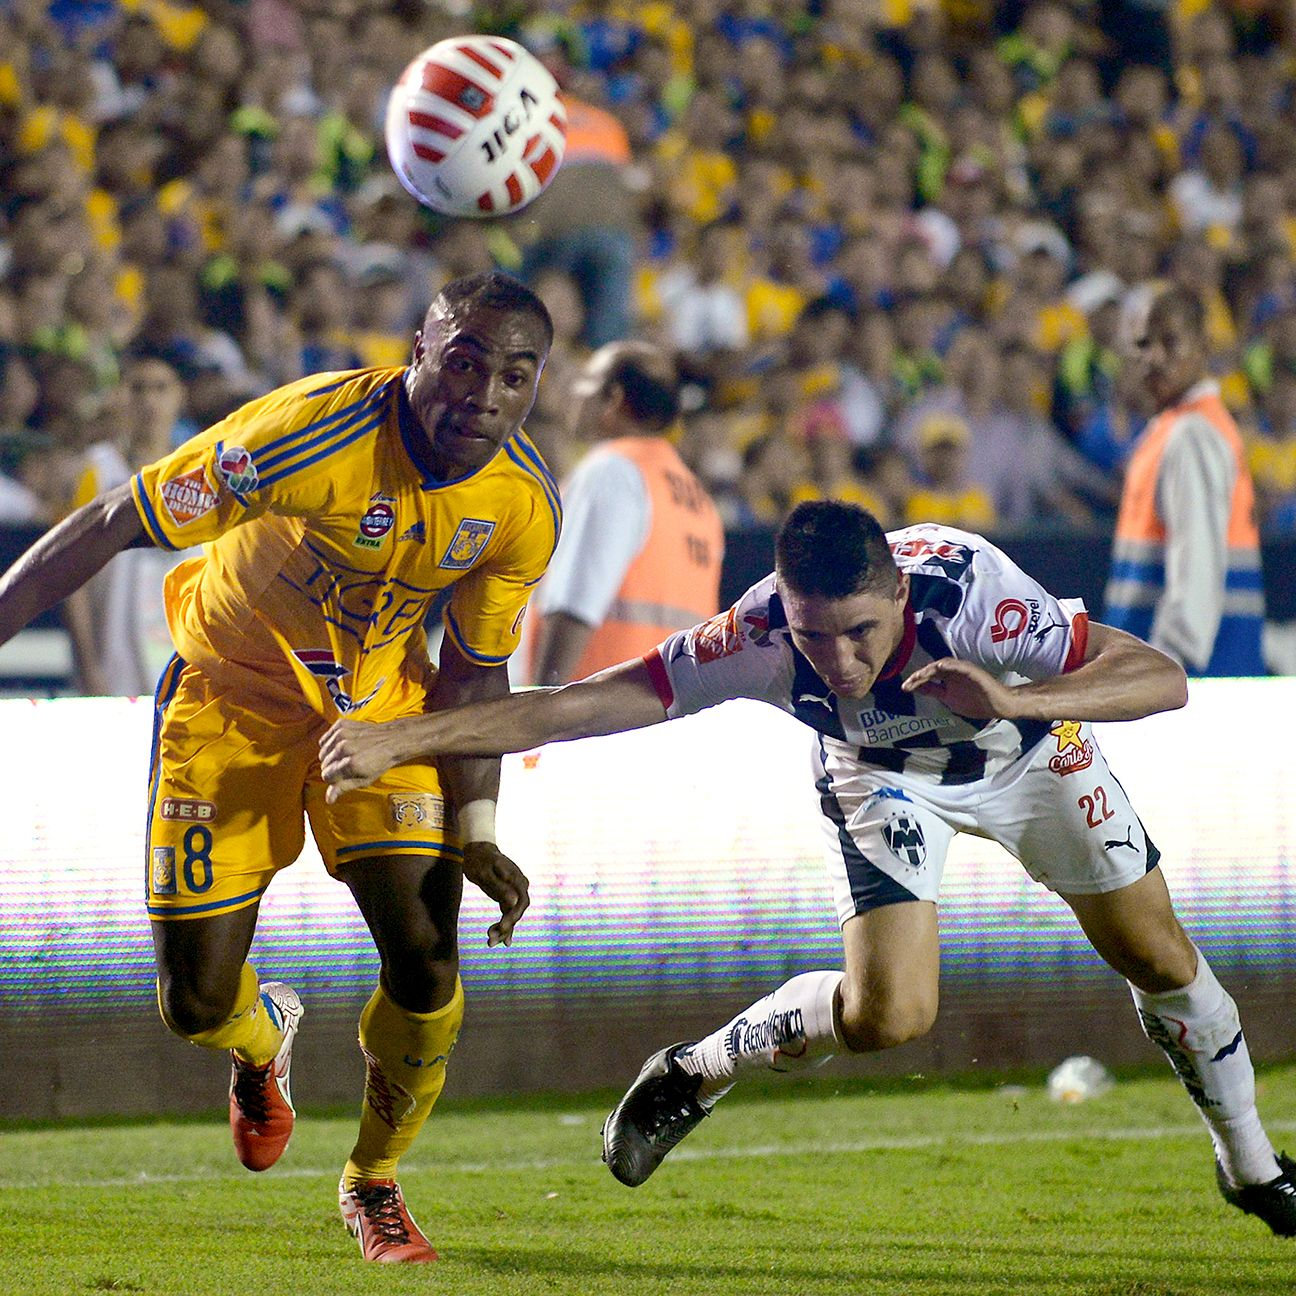 Tigres will be looking to make a late run to the top of the Liga MX table following their 3-0 win over city rivals Monterrey.